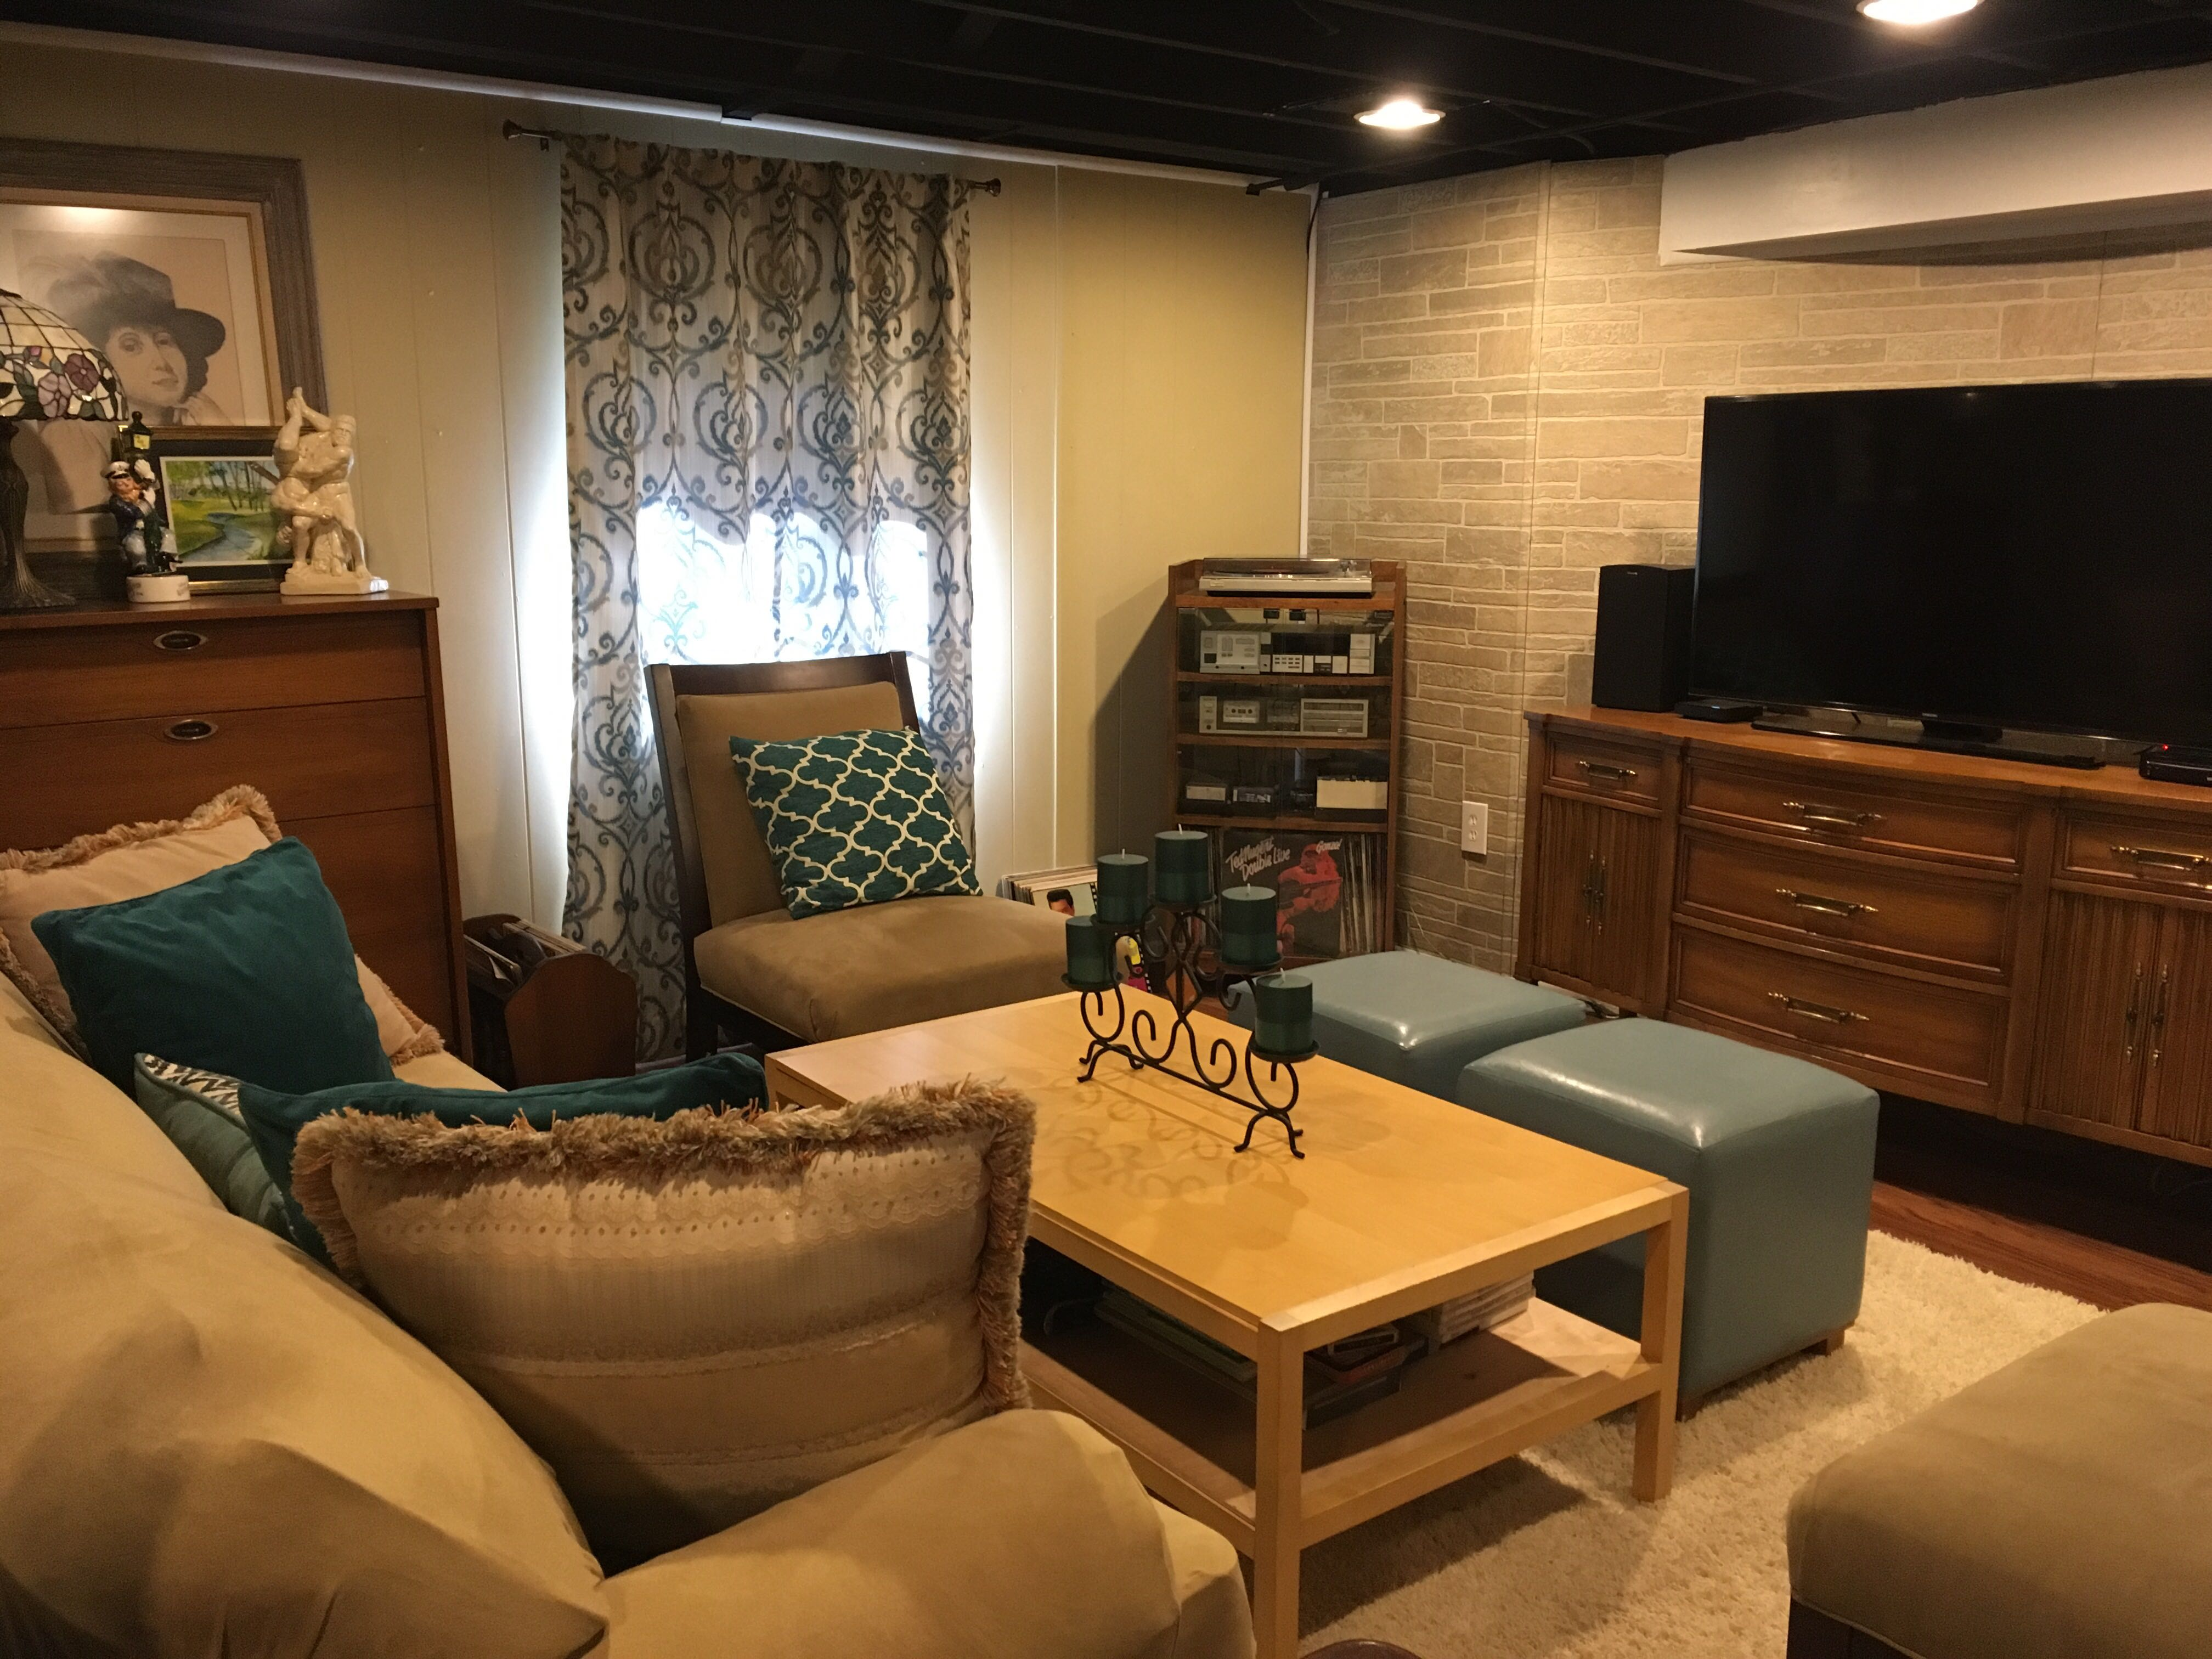 Showcasing a basement/living area remodel with new furniture, paint, and indoor décor.